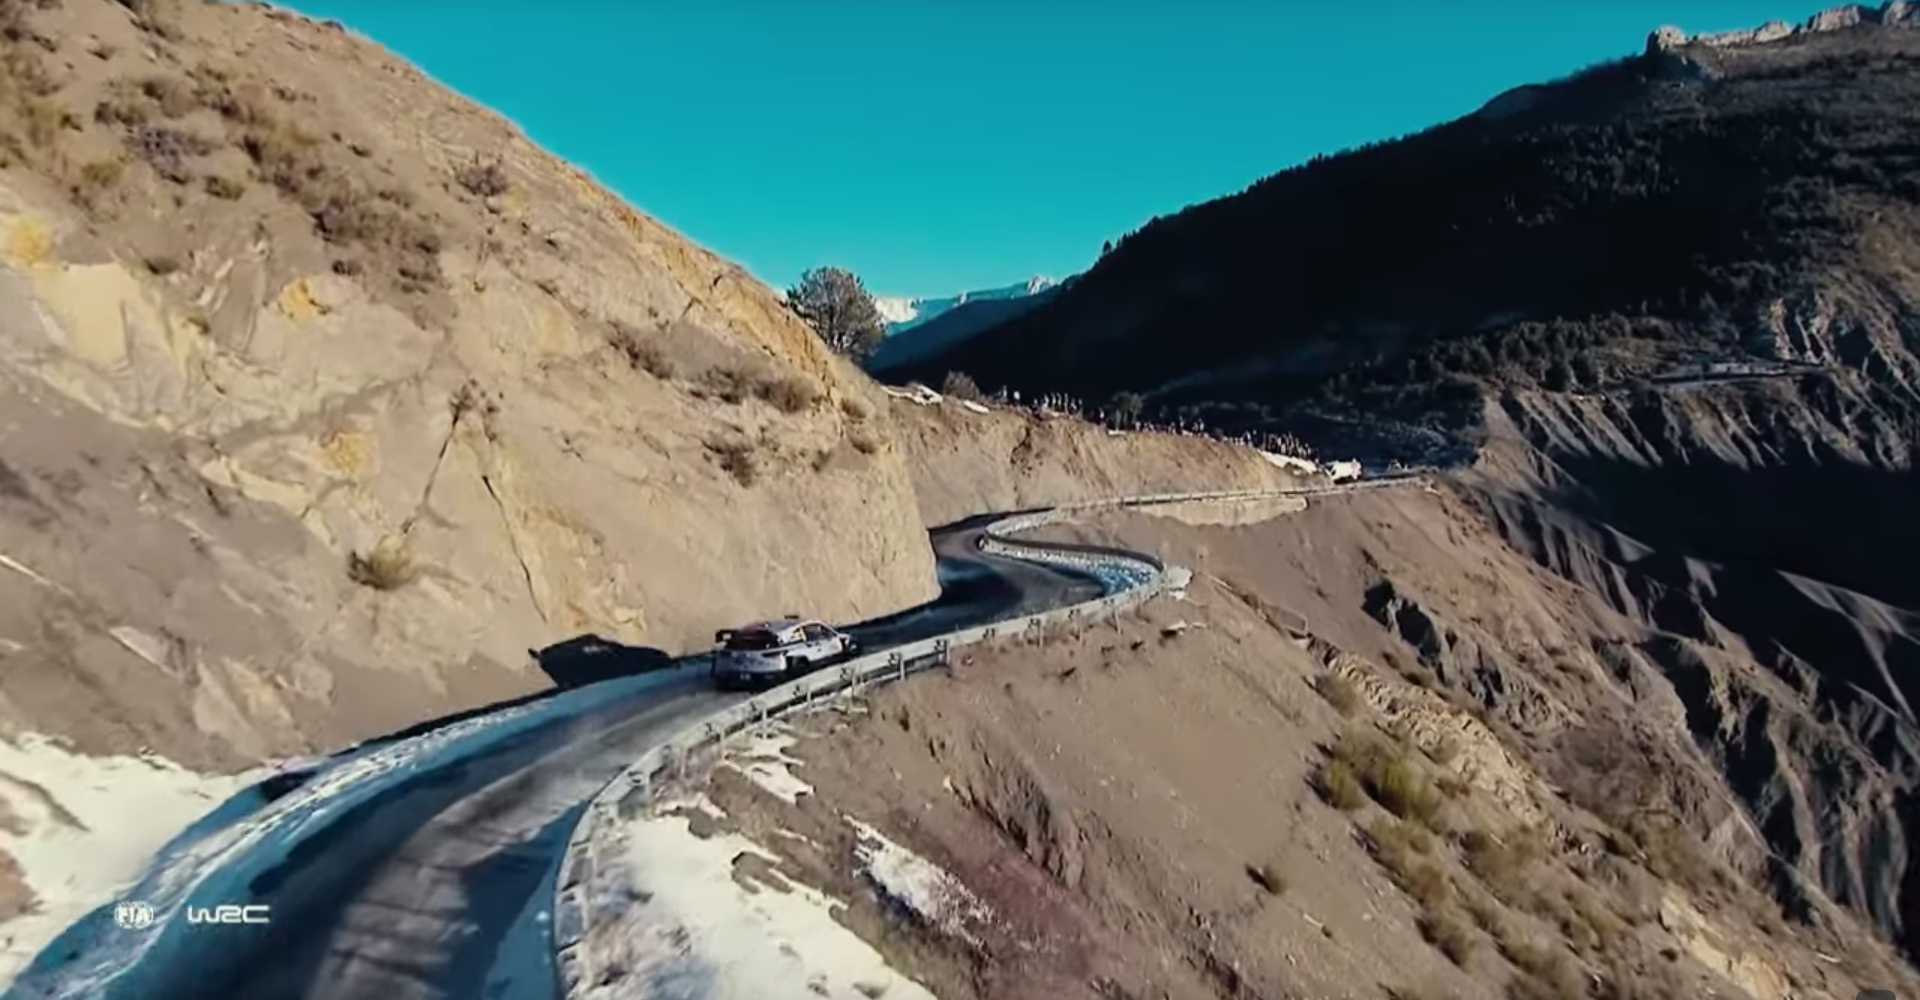 Drones Are Finally Being Put To Good Use: Tracking World Rally Cars